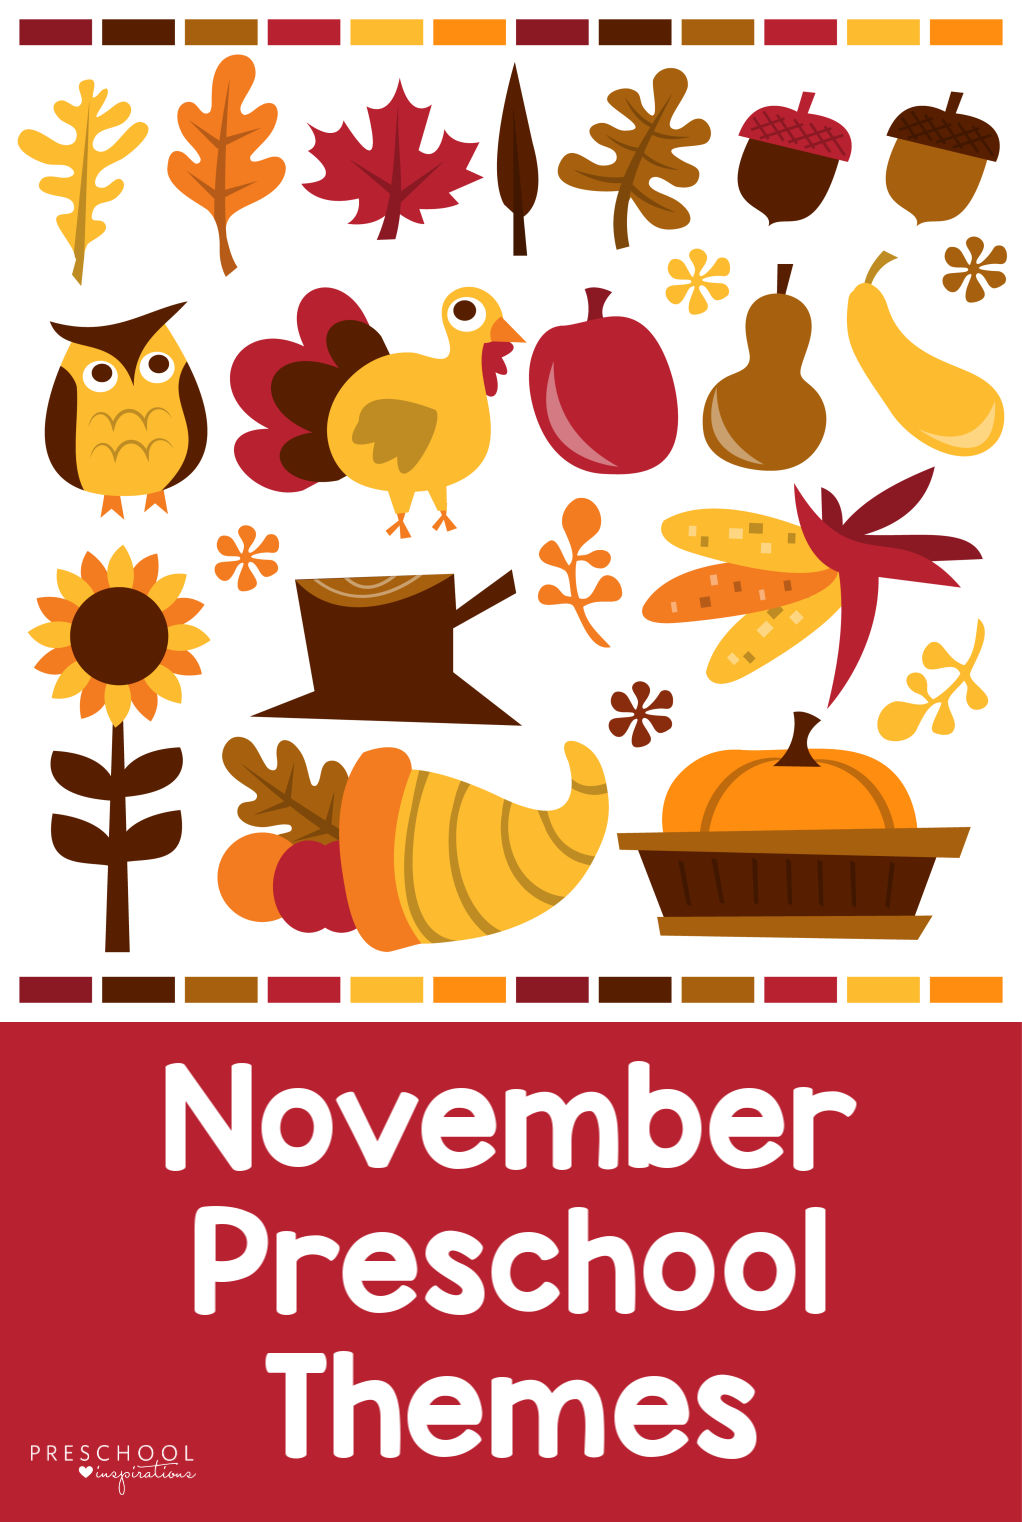 A list of preschool themes for November! Includes fun ideas like dinosaur theme, Thanksgiving theme, leaf theme, fall theme, and more! #preschool #preschoolthemes #fall #thanksgiving